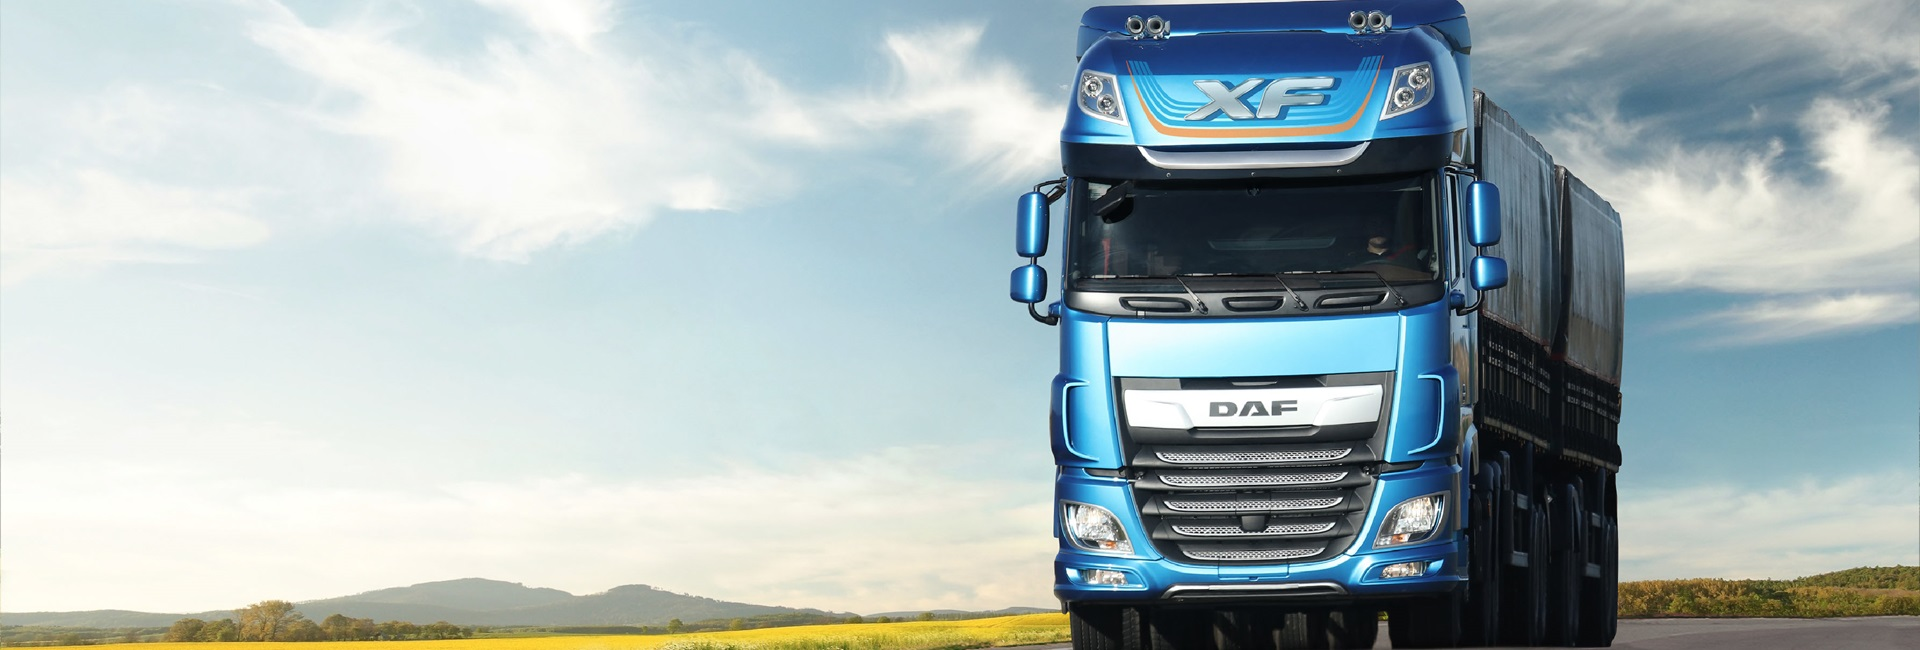 Novo-DAF-XF-Brasil-Hero-Header-Large-3840x-3